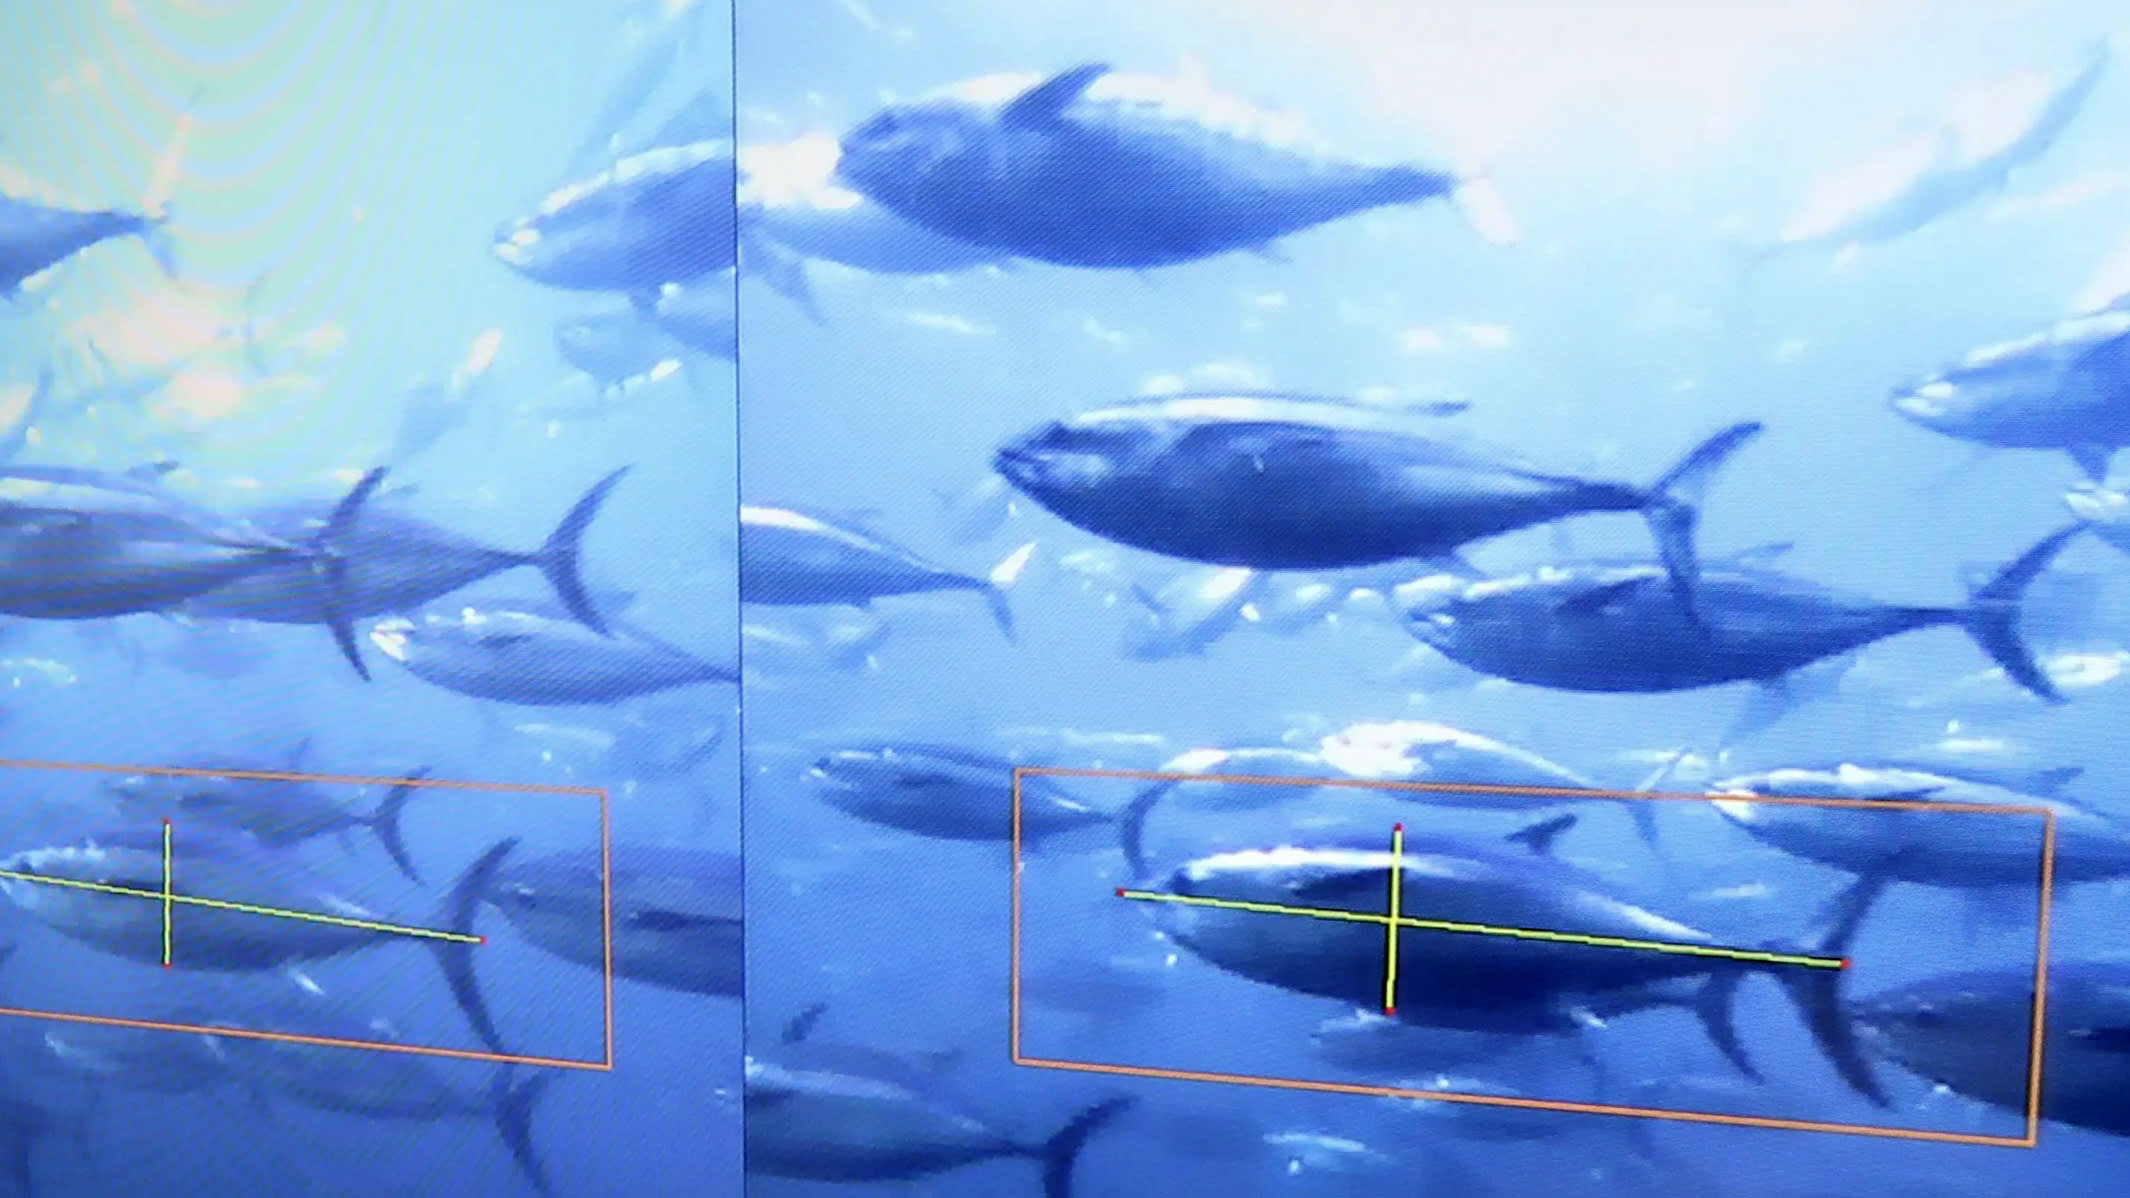 Japan's fish farmers deploy AI and drones to feed hungry